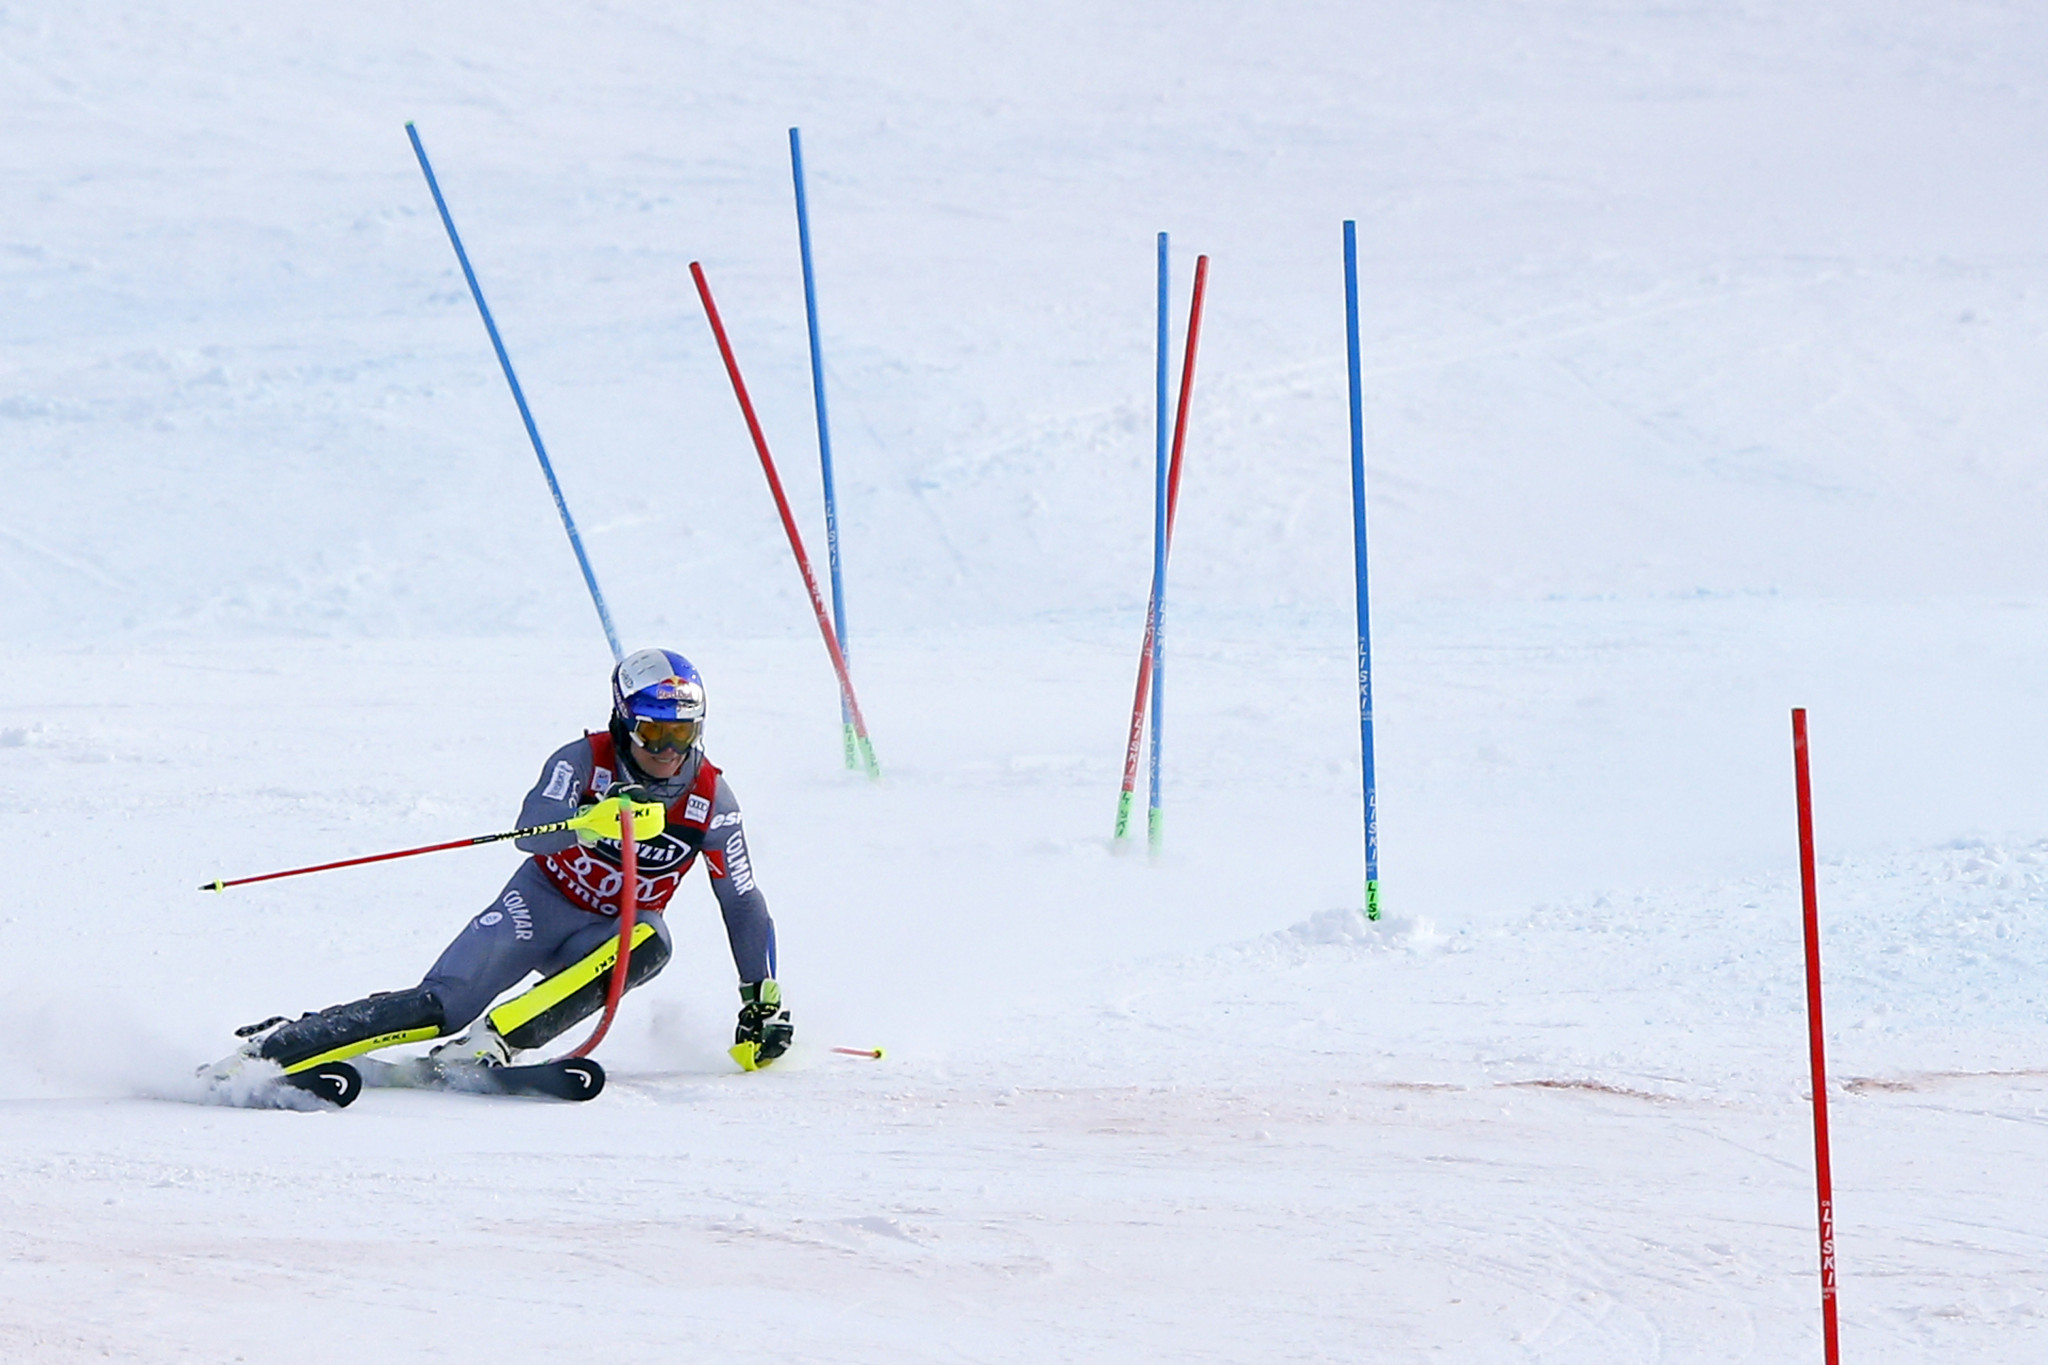 Olympic giant slalom bronze medallist Alexis Pinturault of France won the men's Alpine combined race in Bormio ©Getty Images